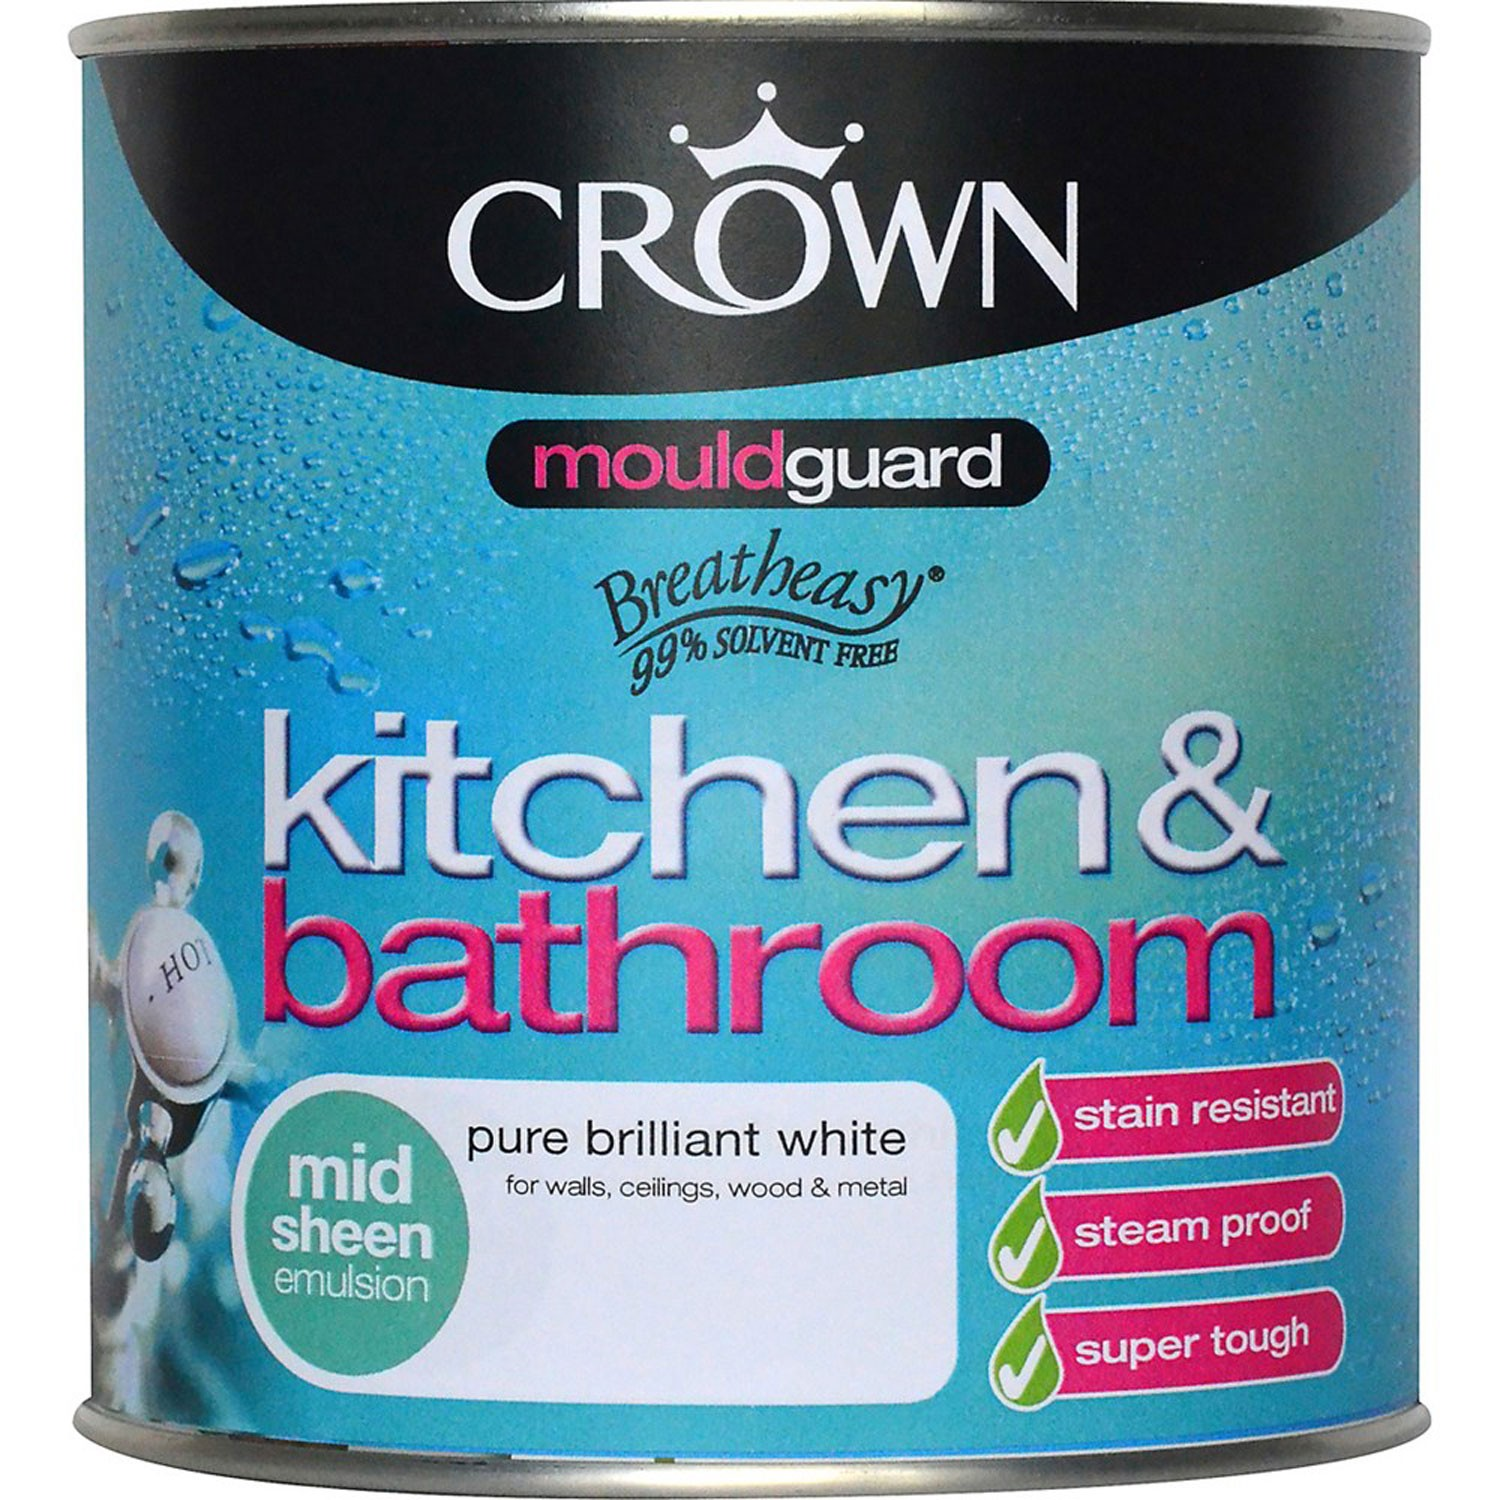 Remarkable Crown 1L Kitchen And Bathroom Mid Sheen Mould Guard Pure Brilliant White Interior Design Ideas Gresisoteloinfo